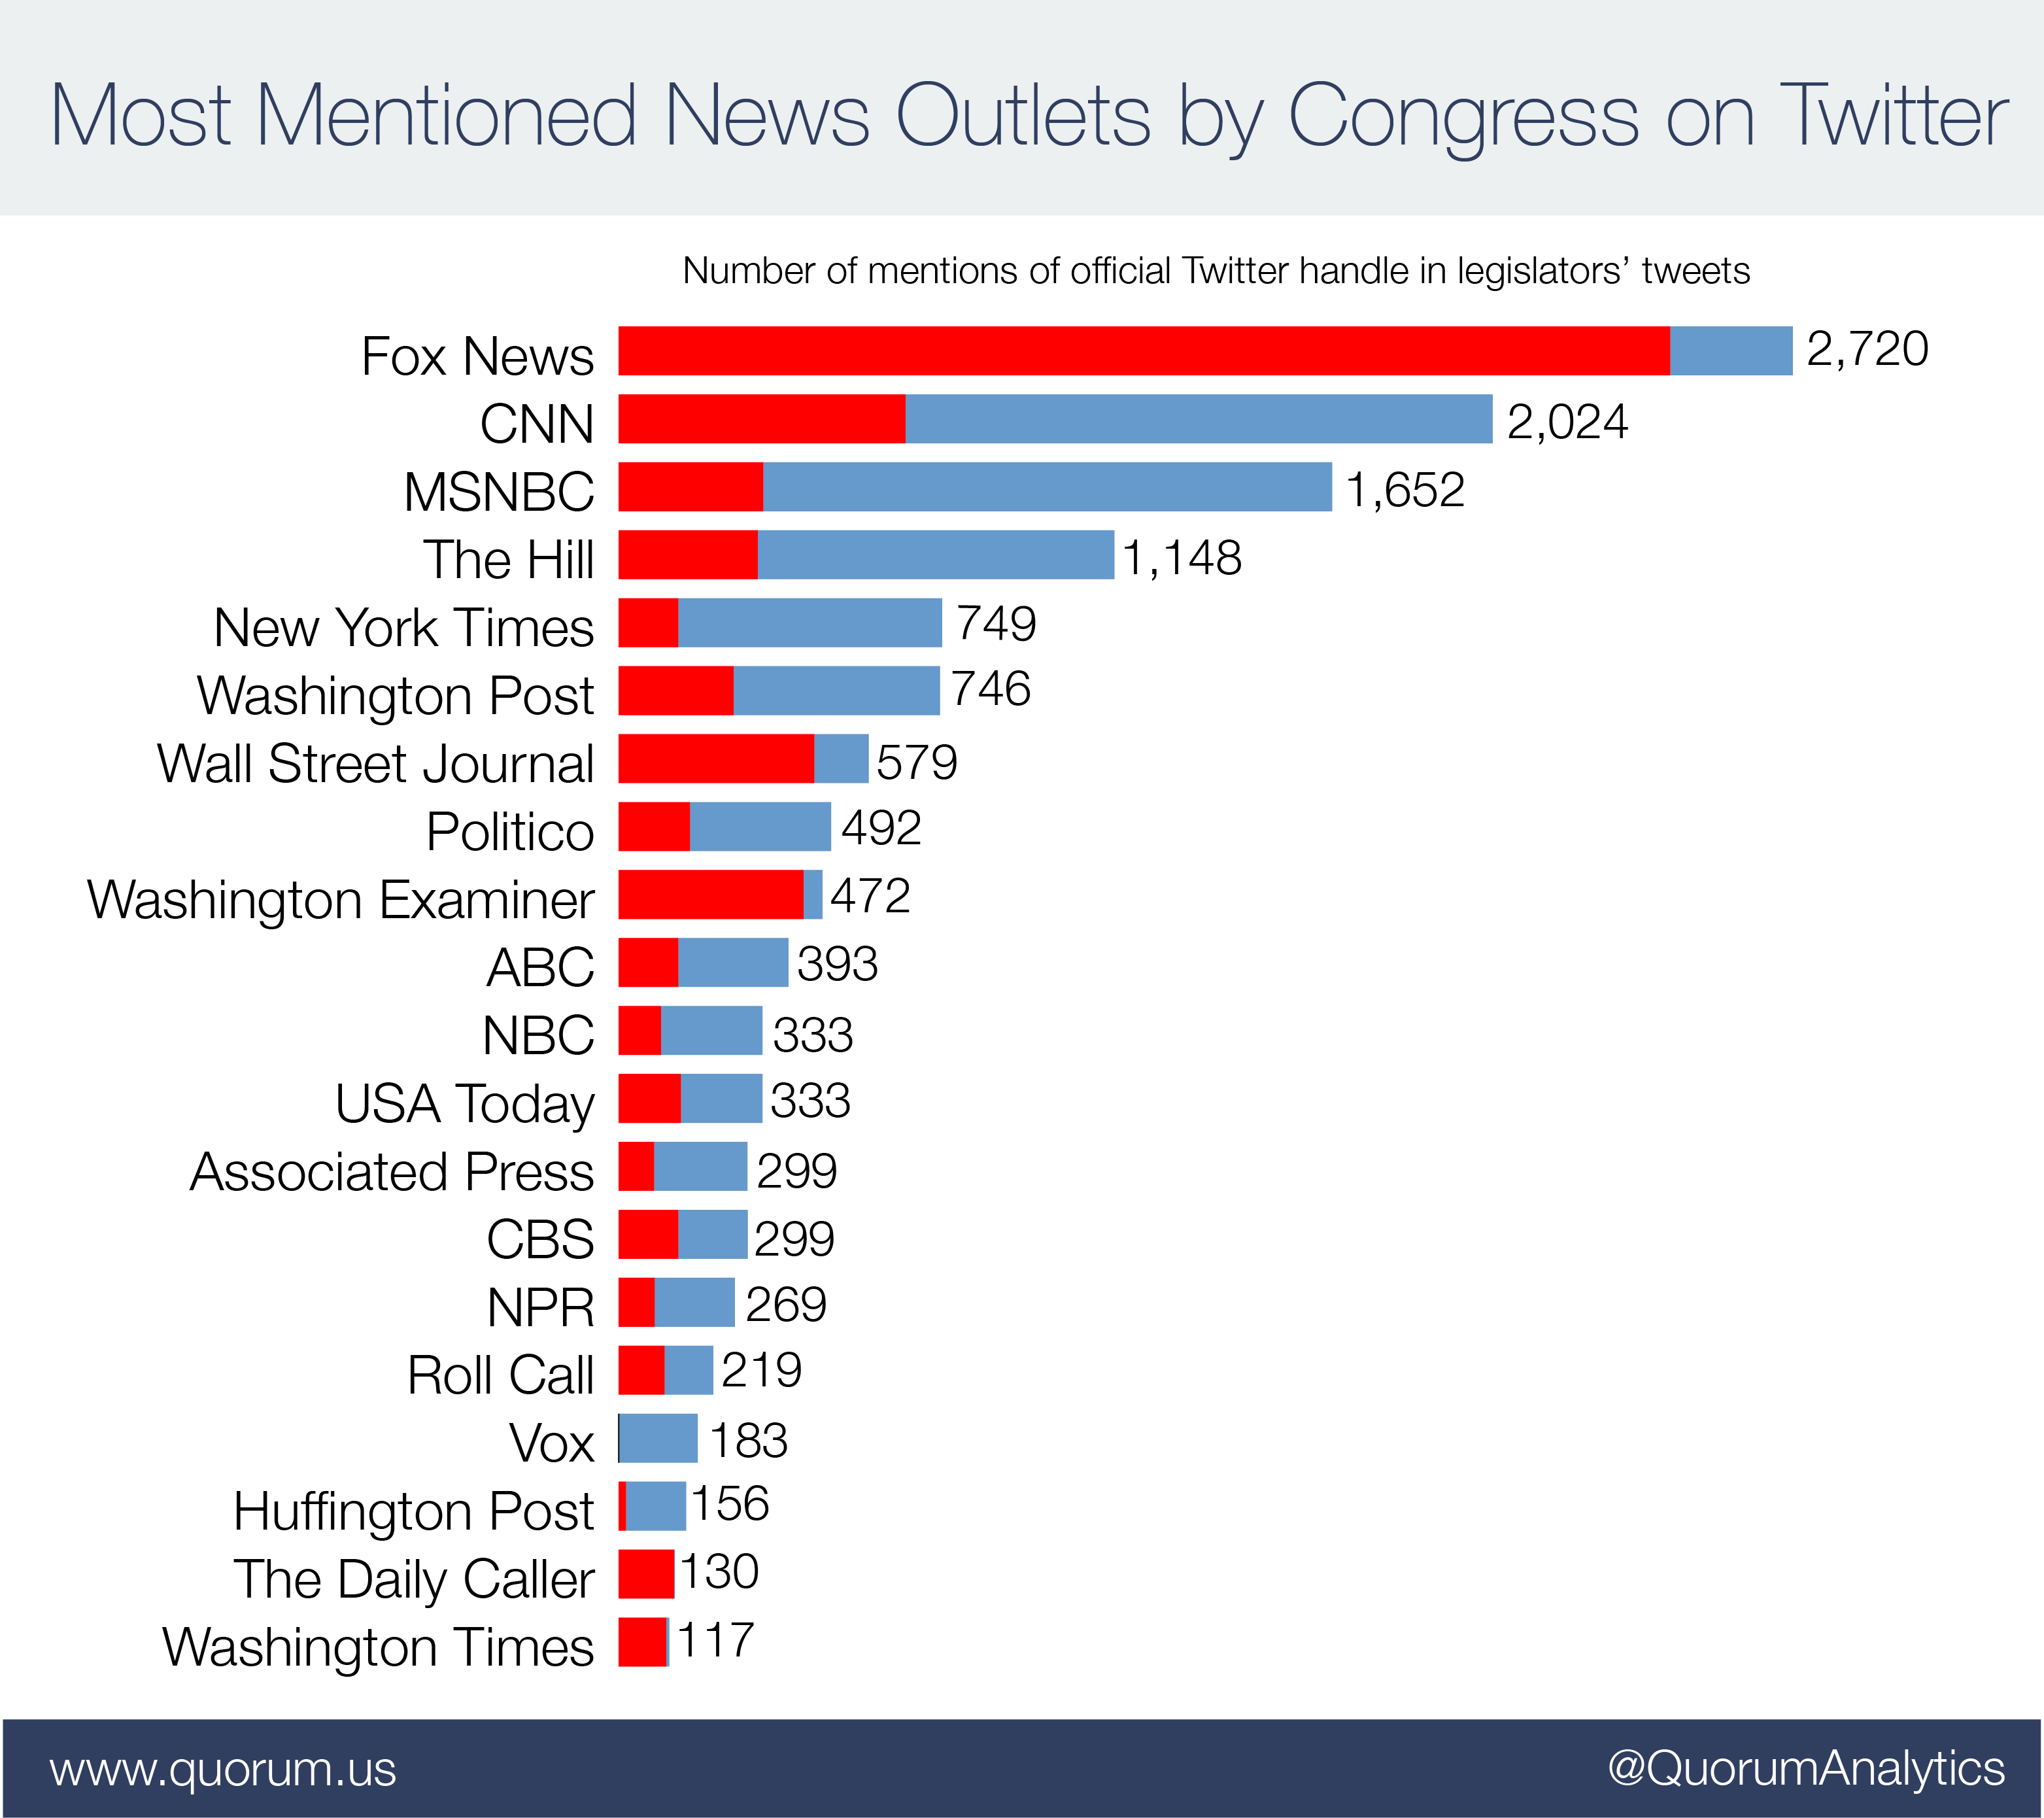 Most Mentioned News Outlets by Congress on Twitter.